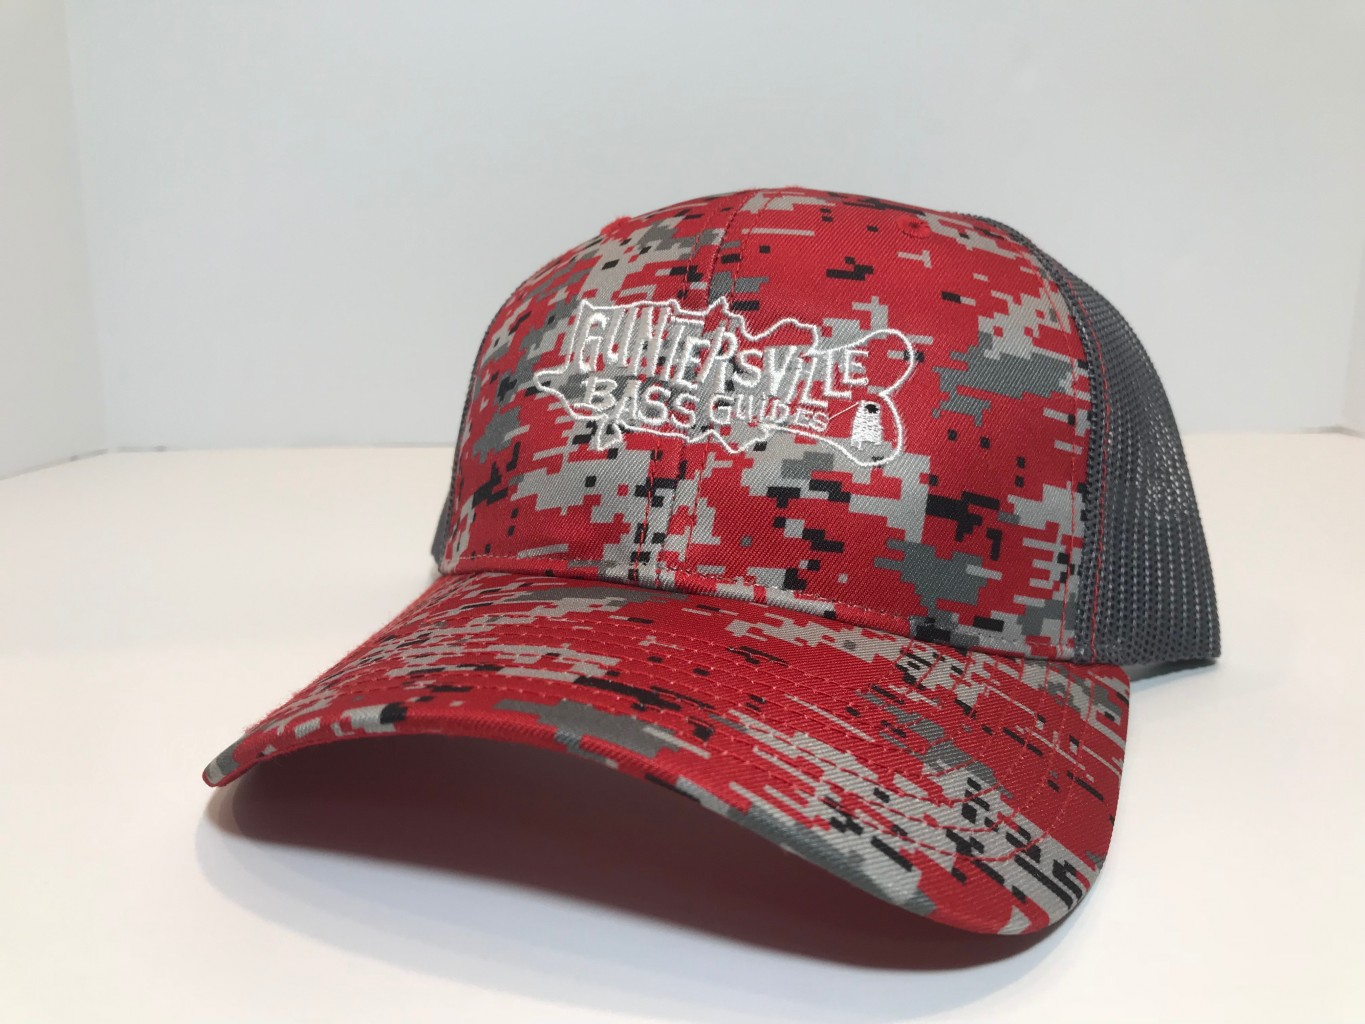 GUNTERSVILLE BASS GUIDES HATS DIGITAL CAMO